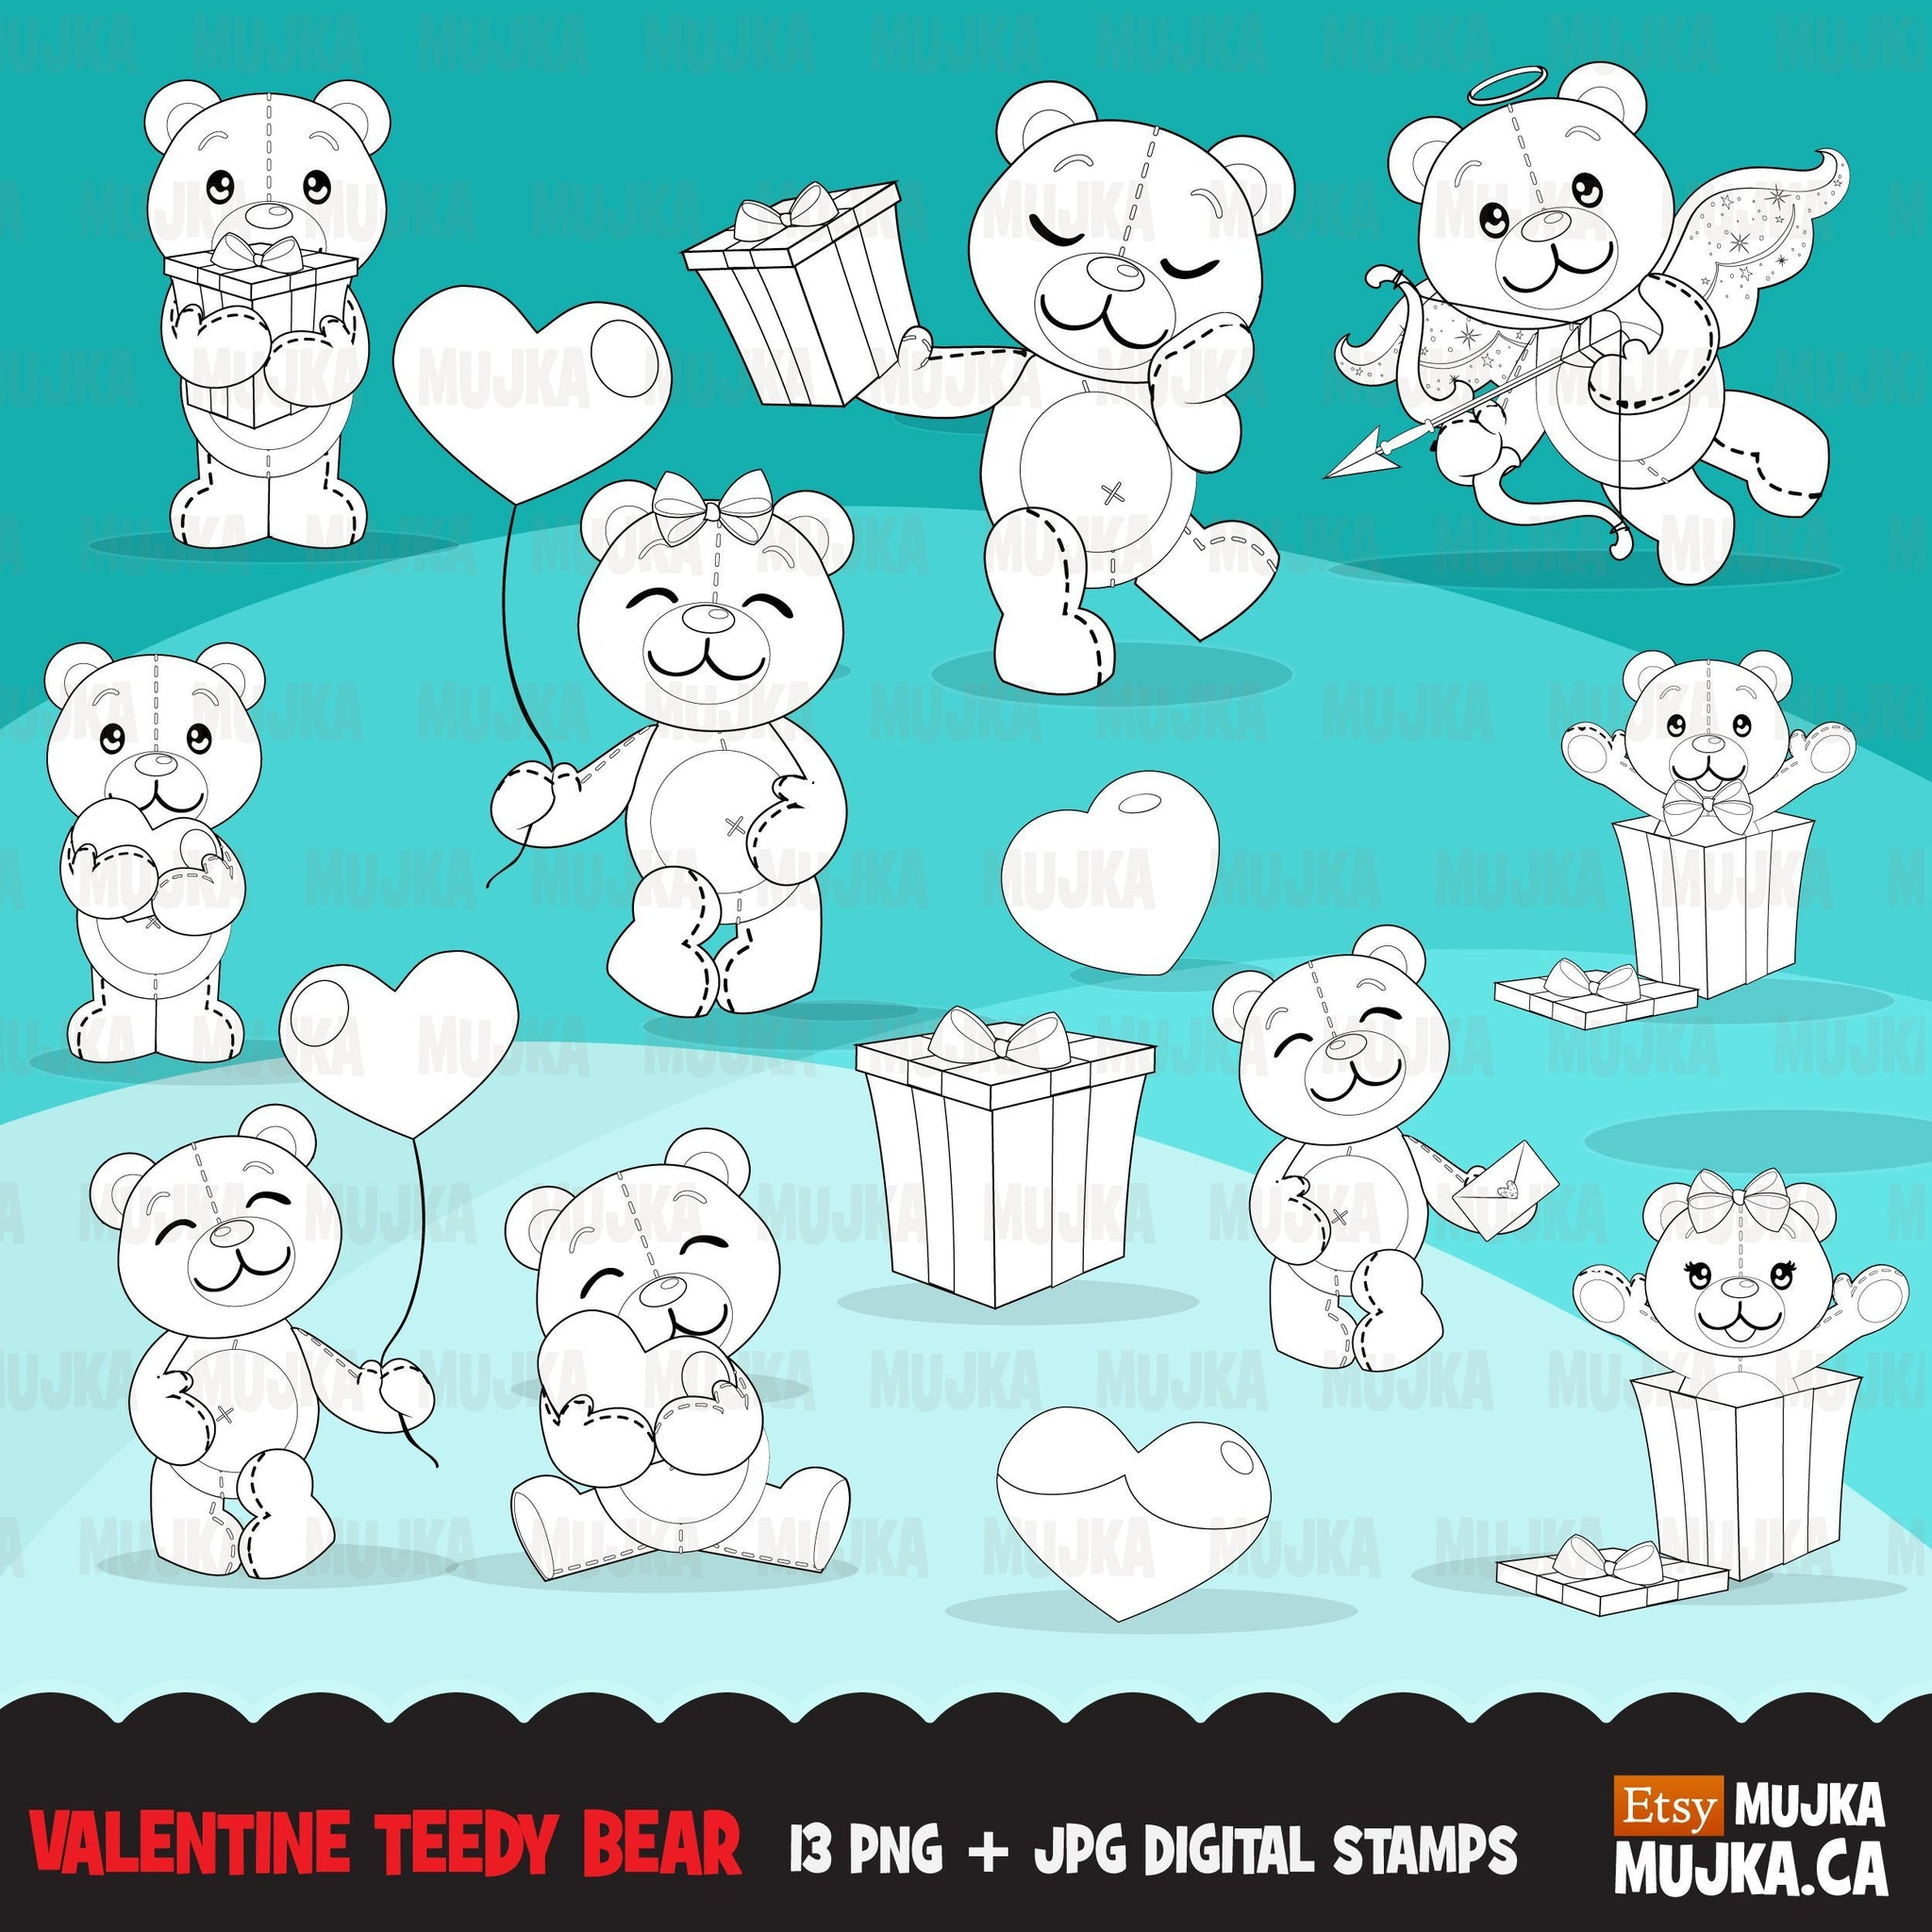 Valentine Teddy bear Digital Stamps, Valentines day stuffed animal